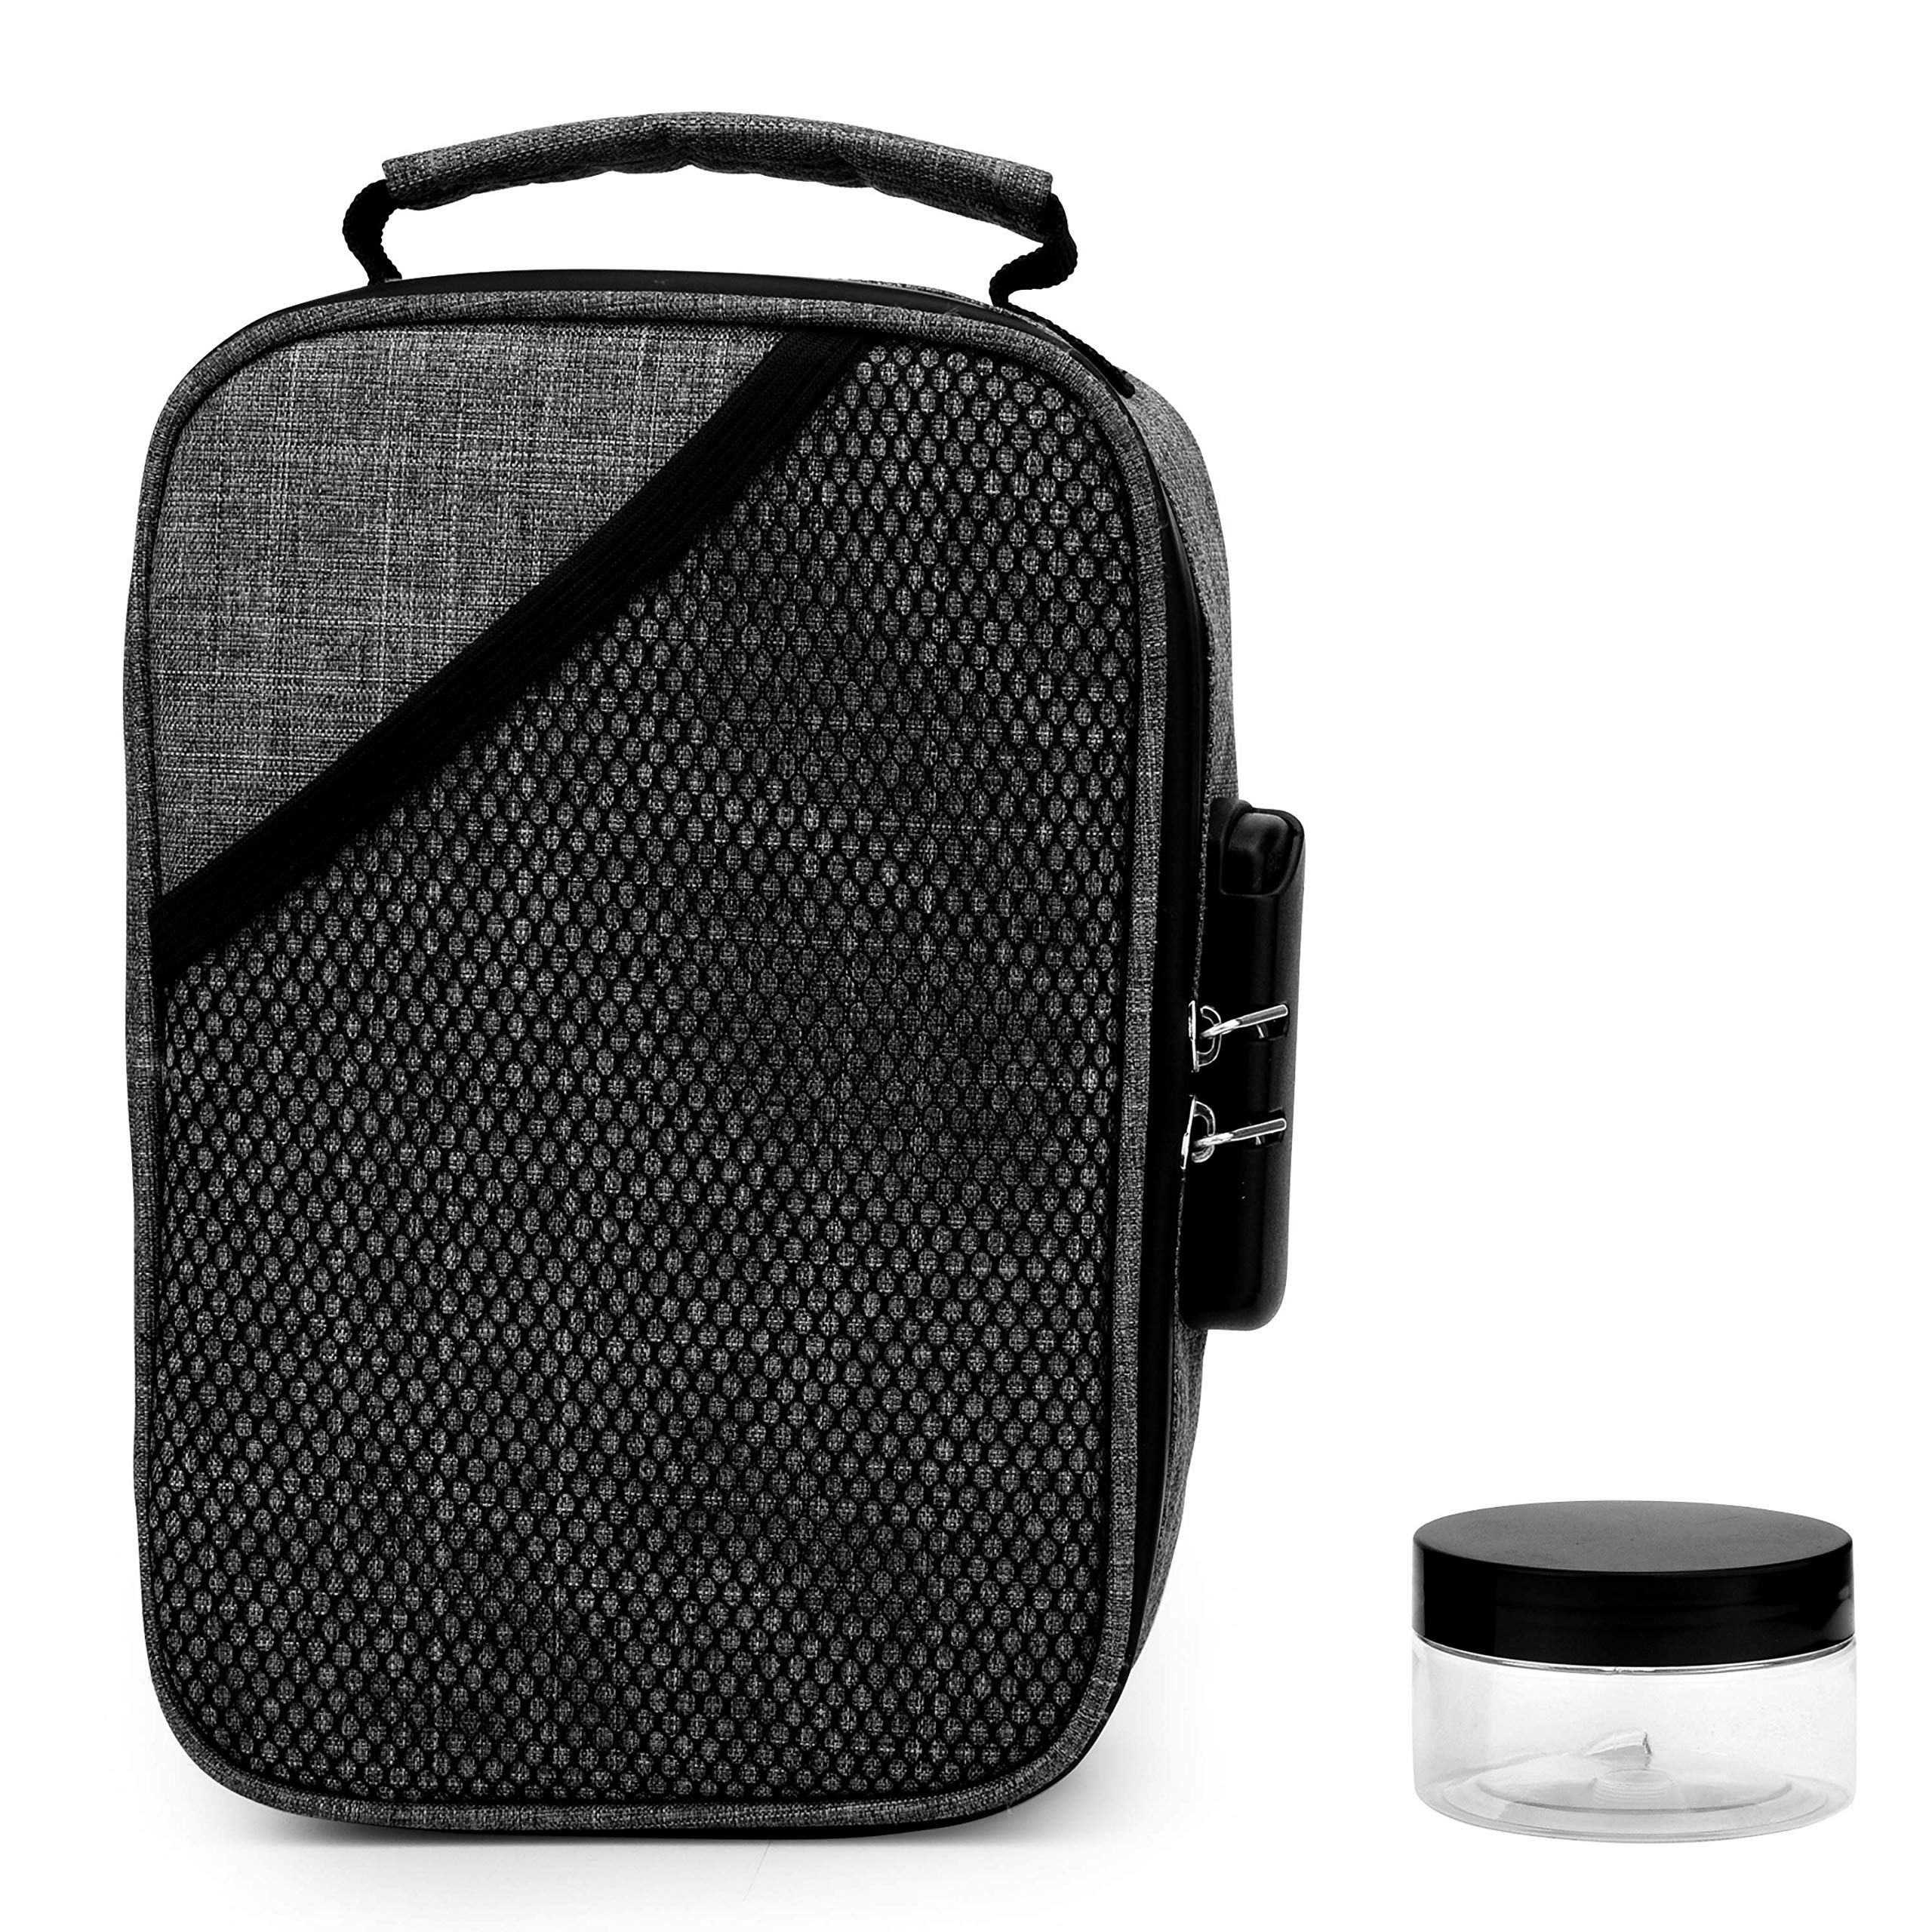 Smell Proof Bags by Hydroflyy - (Secure) Combination Lock and Large Storage Capacity, Keep Your Herb Stash, Jar, Weed, Vapes, Grinder and Rolling Papers in a Safe Place Plus Extra Smell Proof Jar.